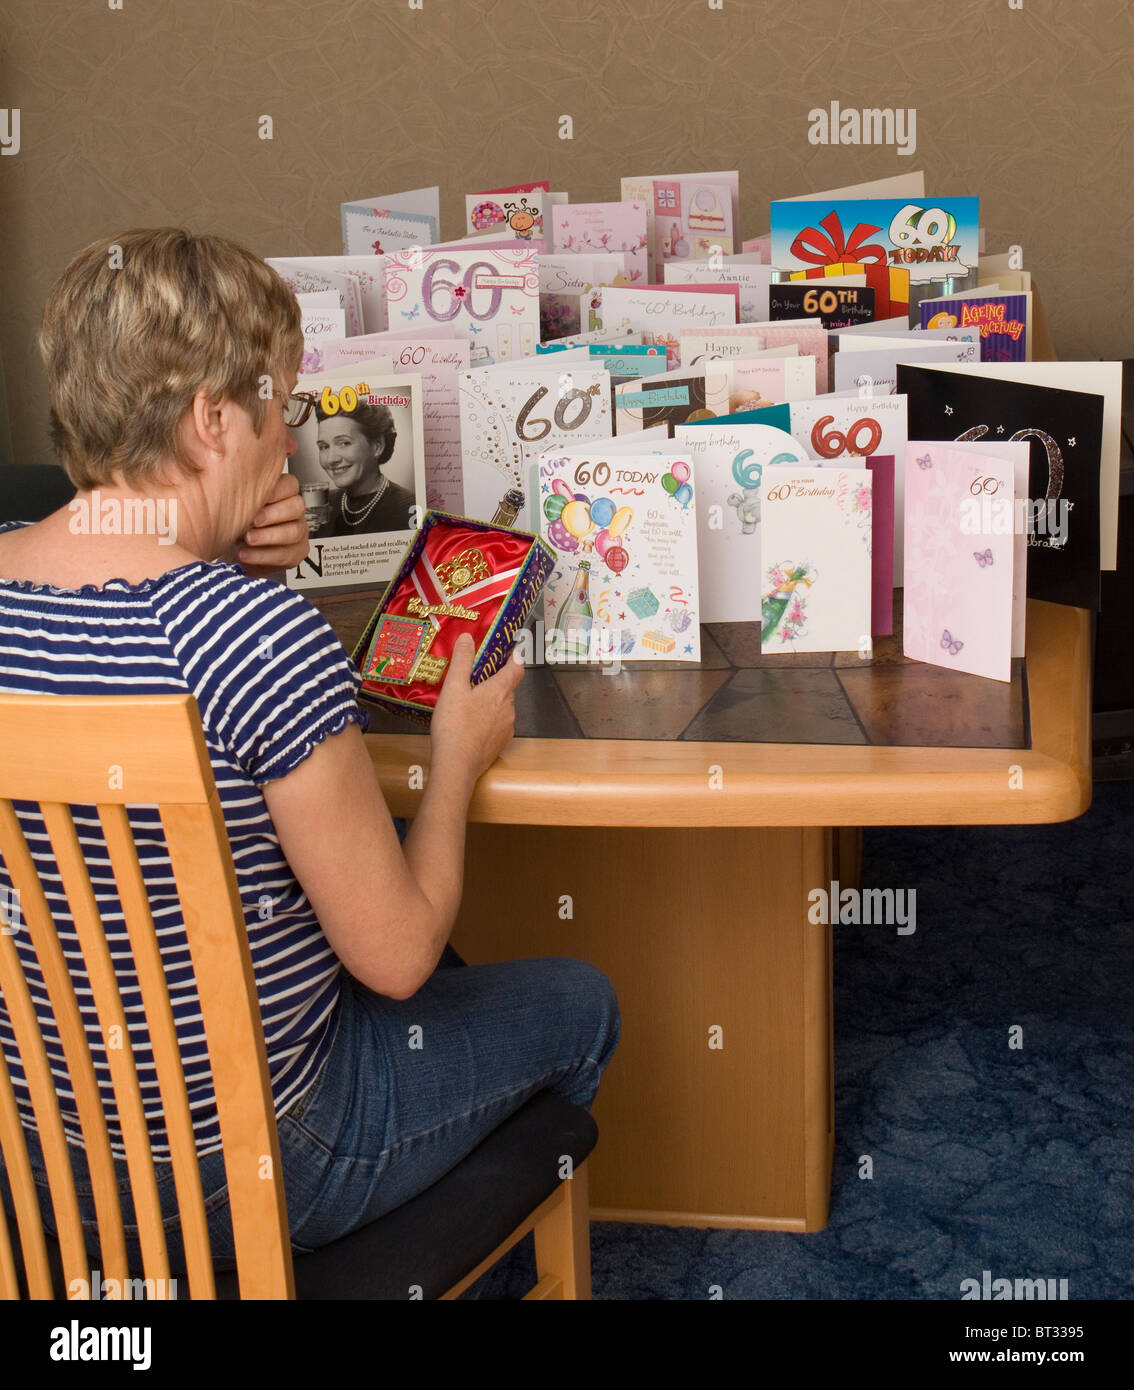 A woman looks depressed while looking at her 21st birthday 'key' while surrounded by cards celebrating her - Stock Image